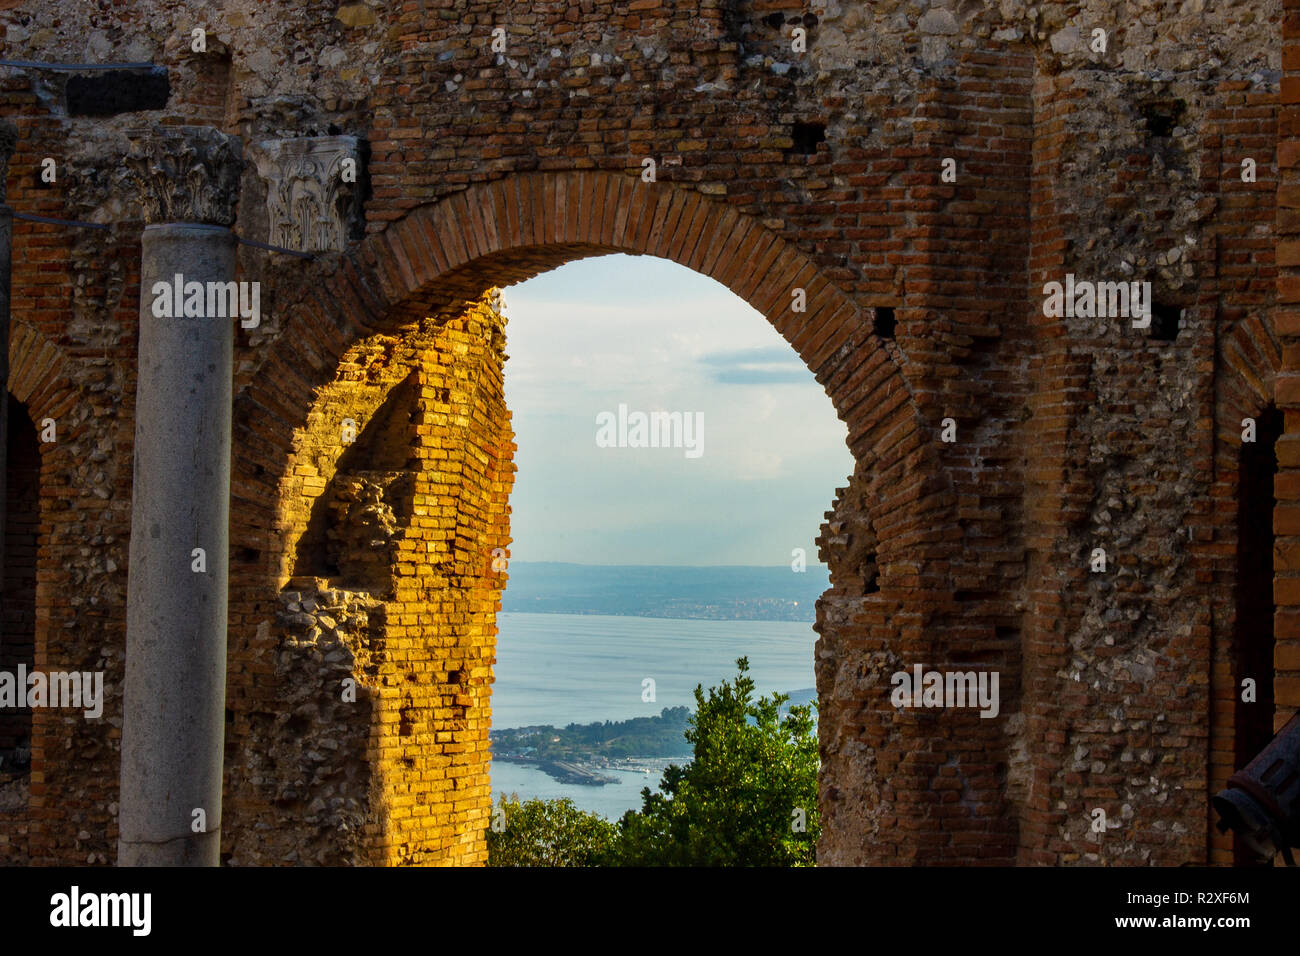 Taormina, Sicily, the window of Greek theater. - Stock Image